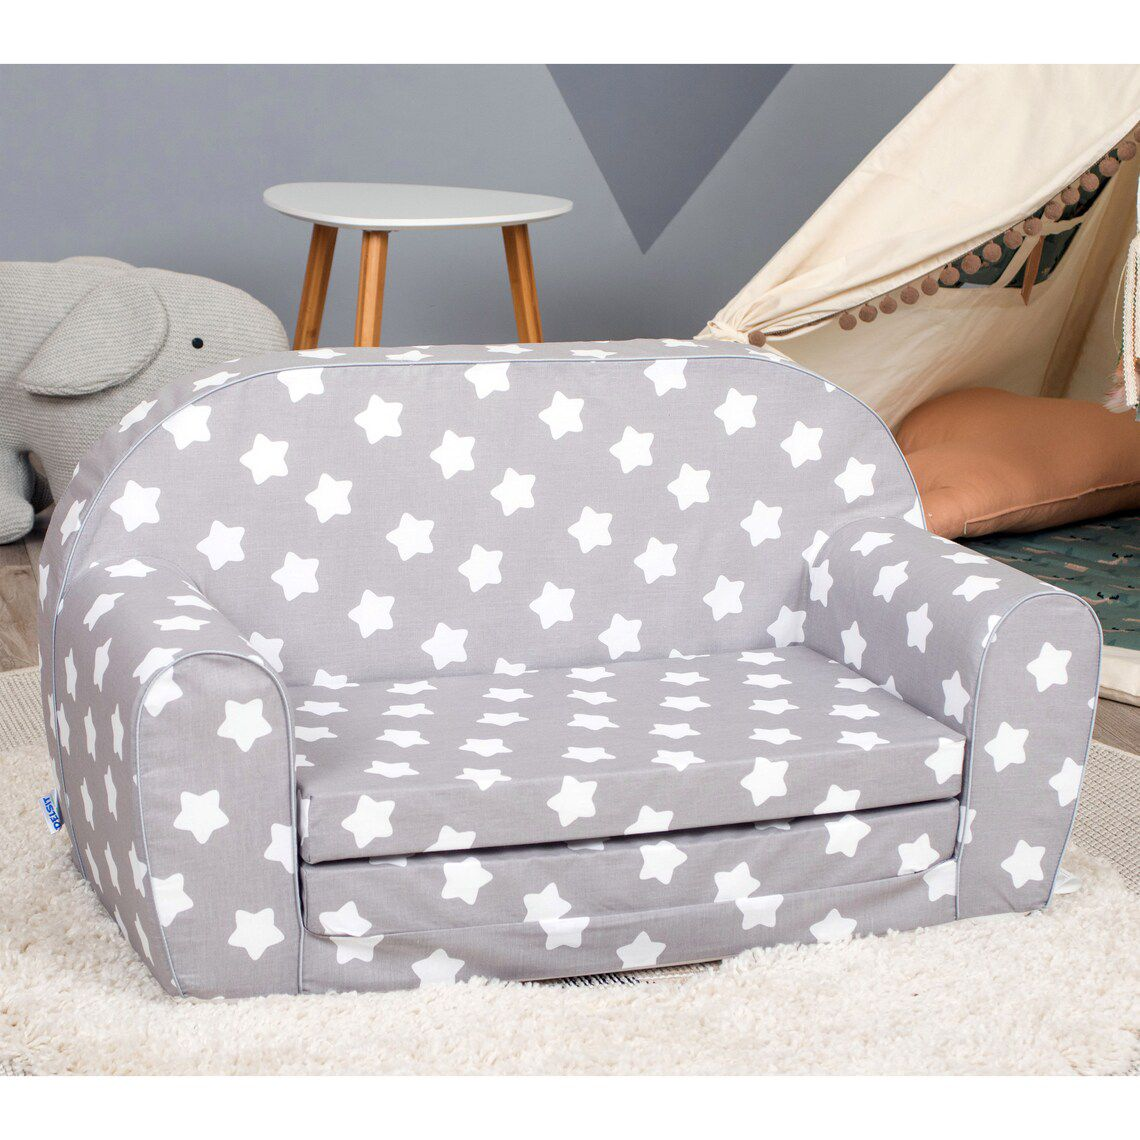 small gray couch with white stars all over